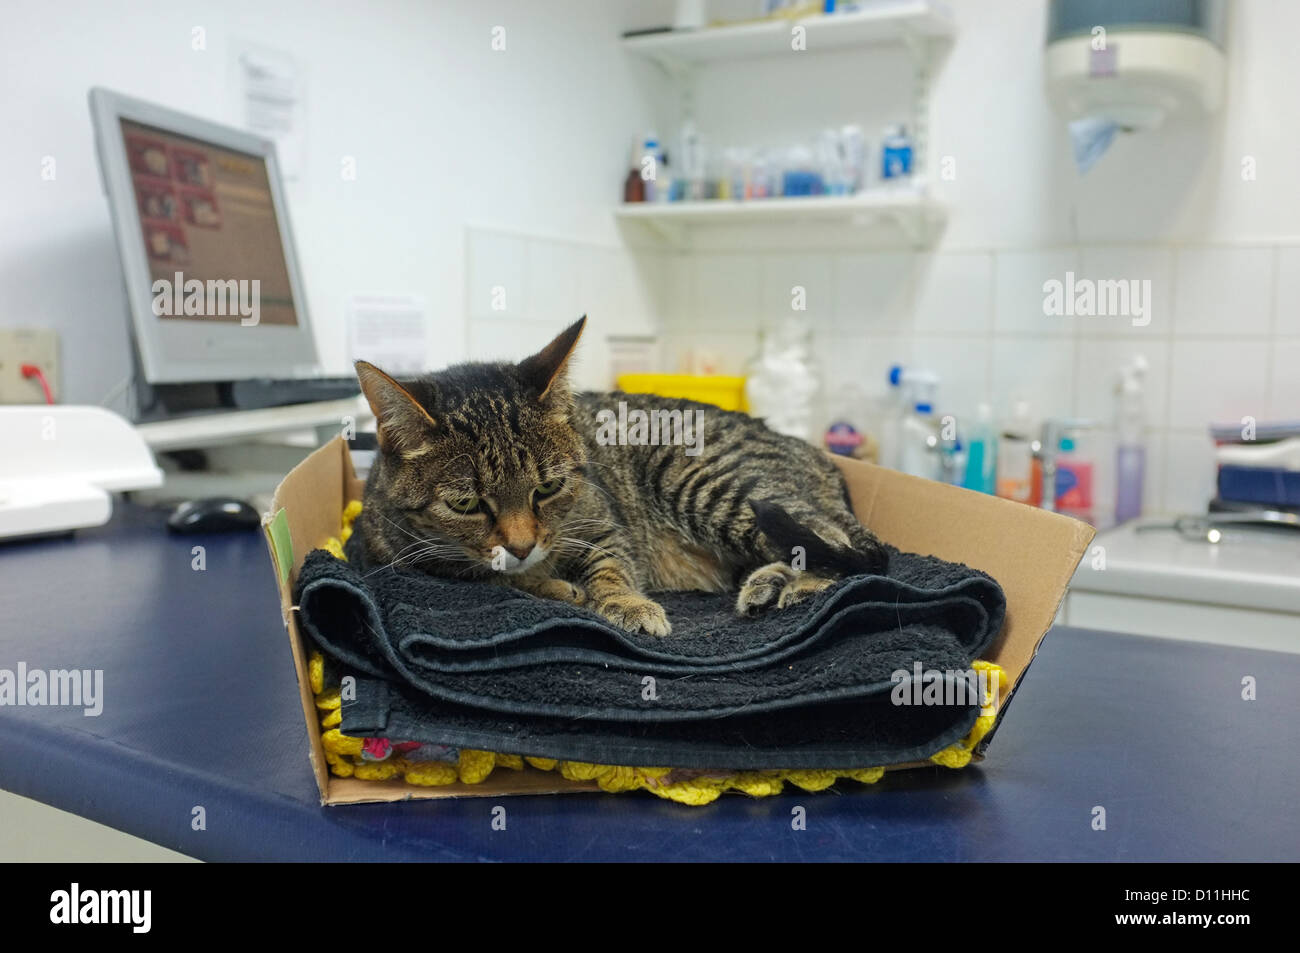 An injured cat just brought into the vets surgery. - Stock Image